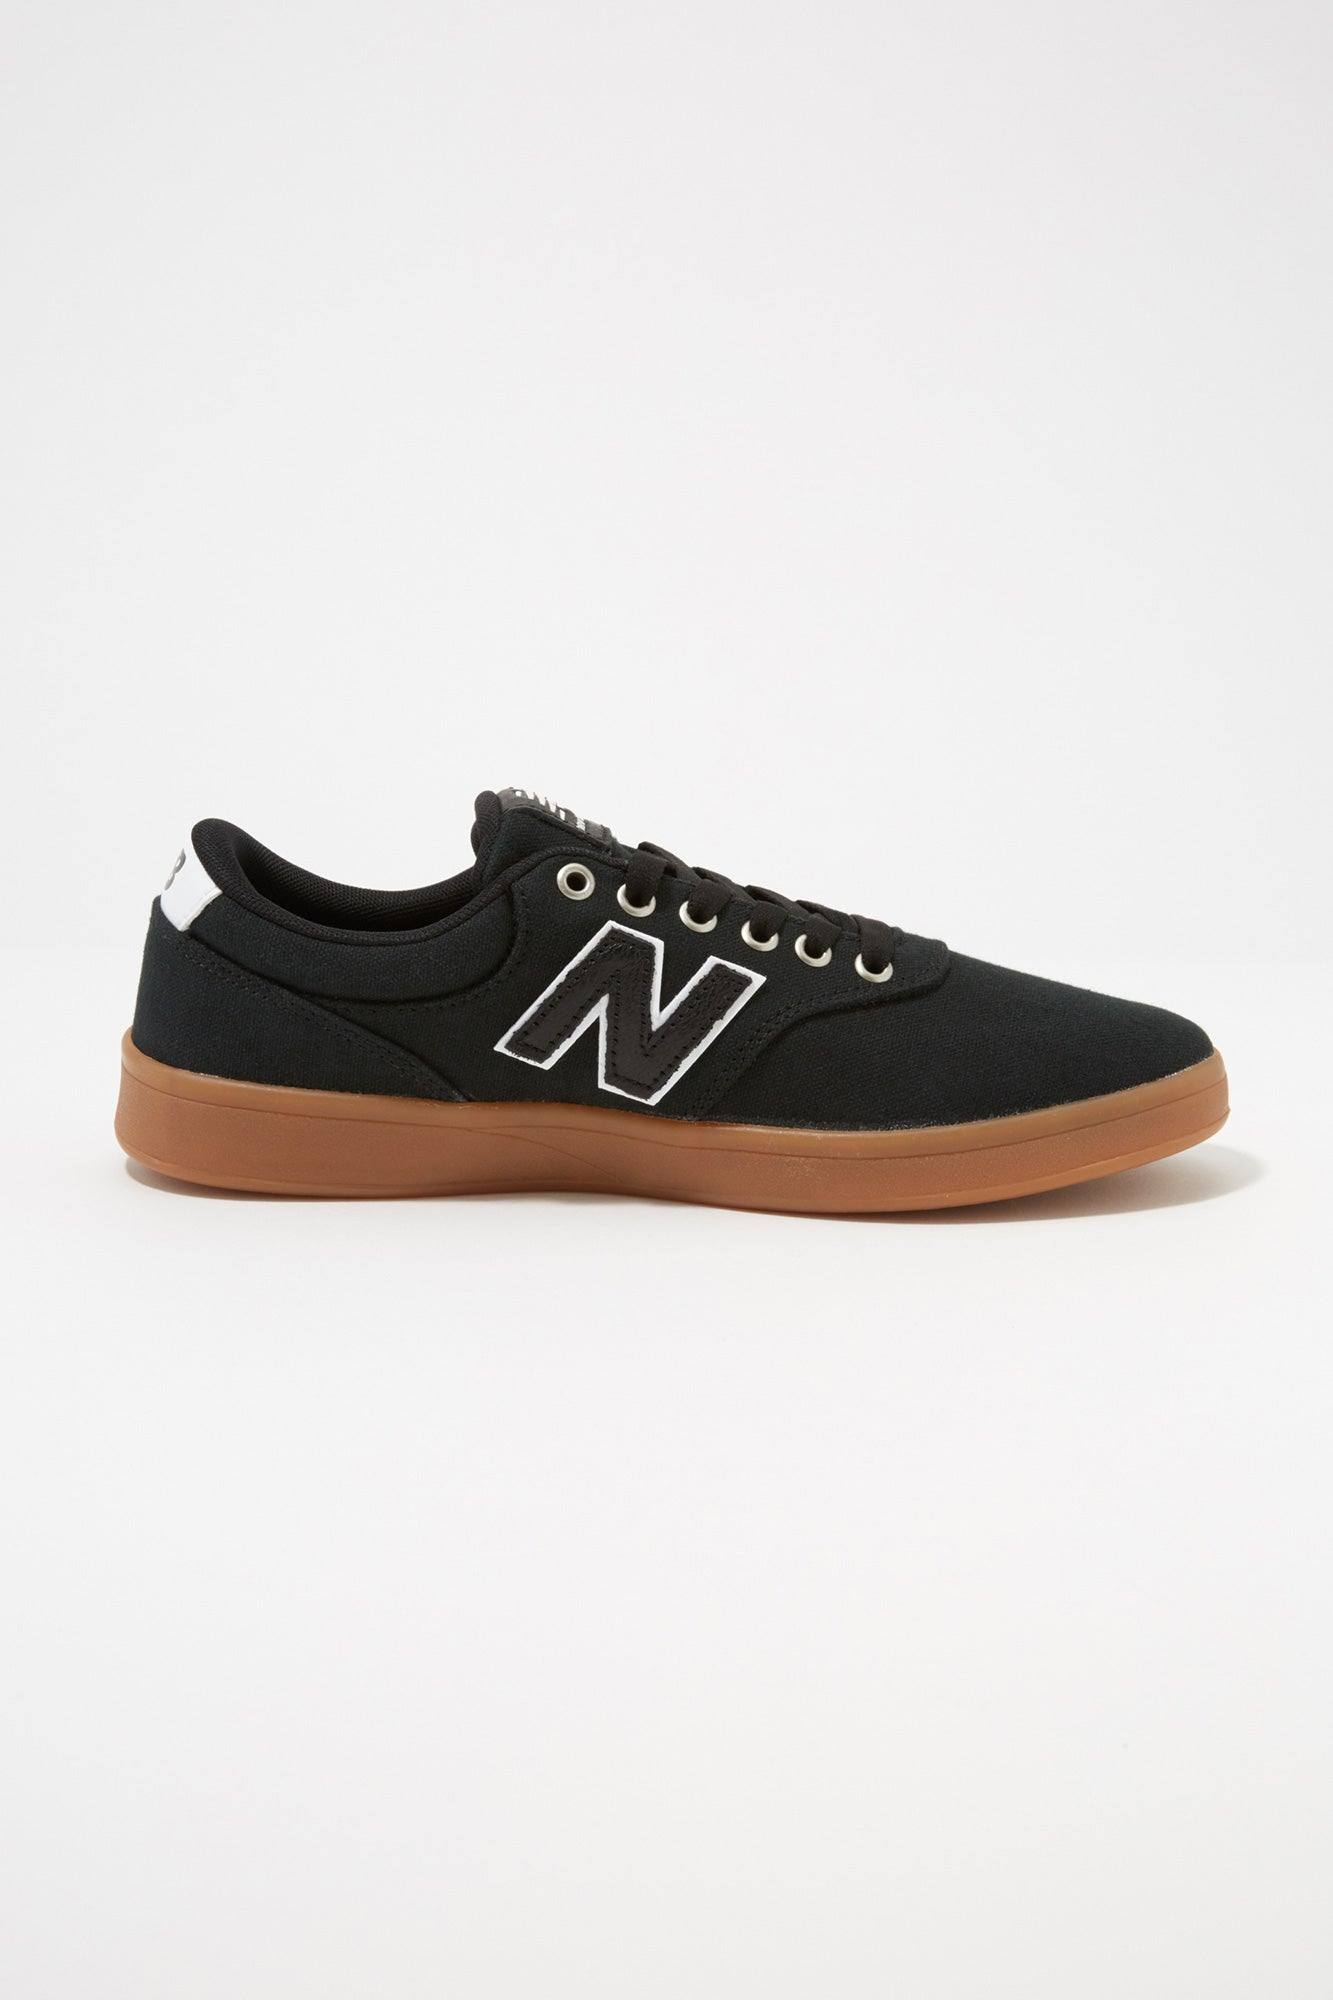 New Balance Guys AM424 Black Sneakers